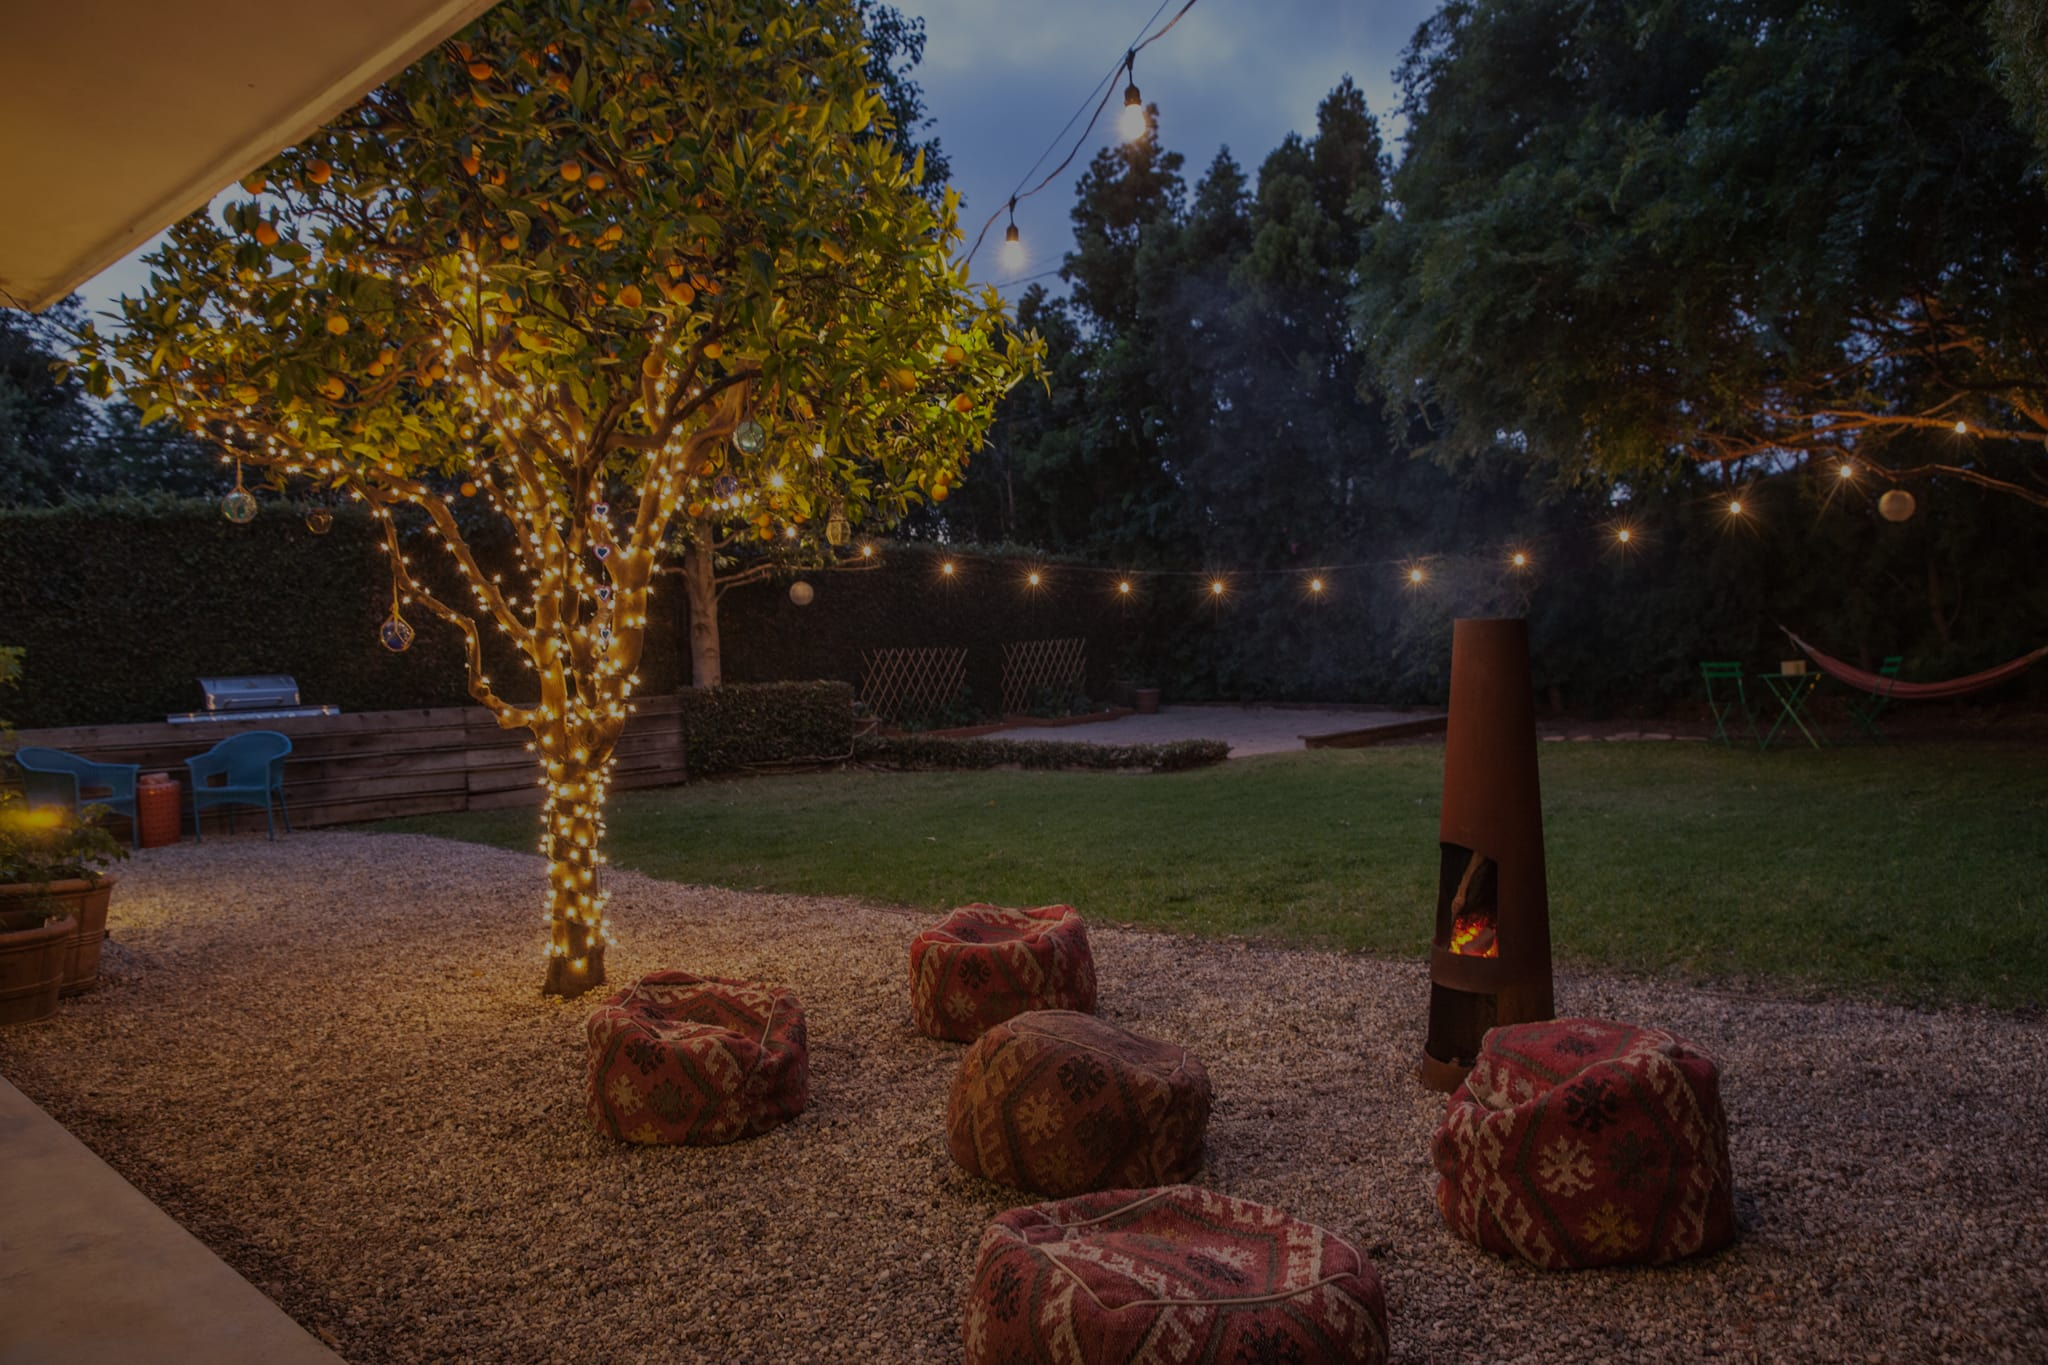 Outdoor Lighting Seattle Wa Britescape Expert landscape lighting